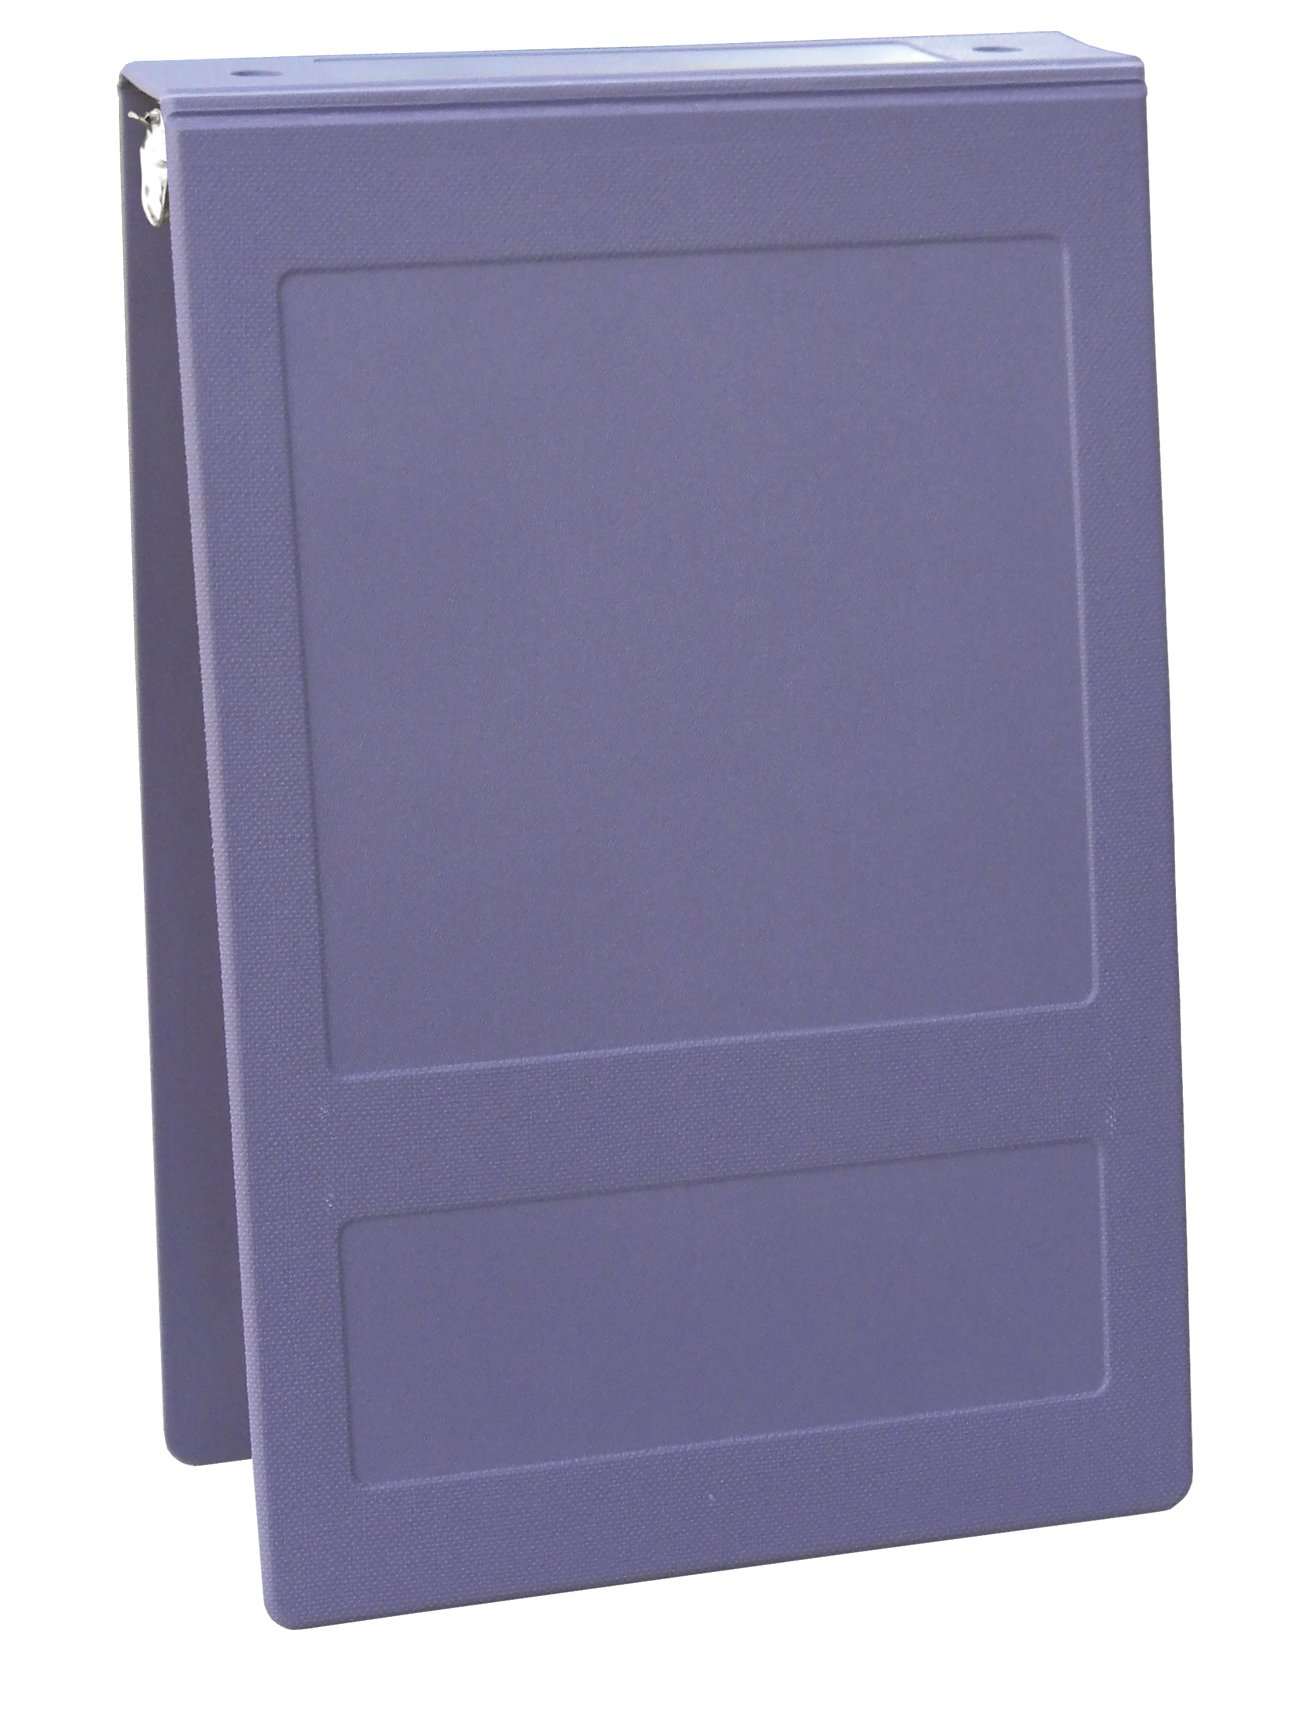 OMNIMED 205010-LL3 Top Open Molded Binder 1 1/2'' - 3 Ring - Lilac (EA)